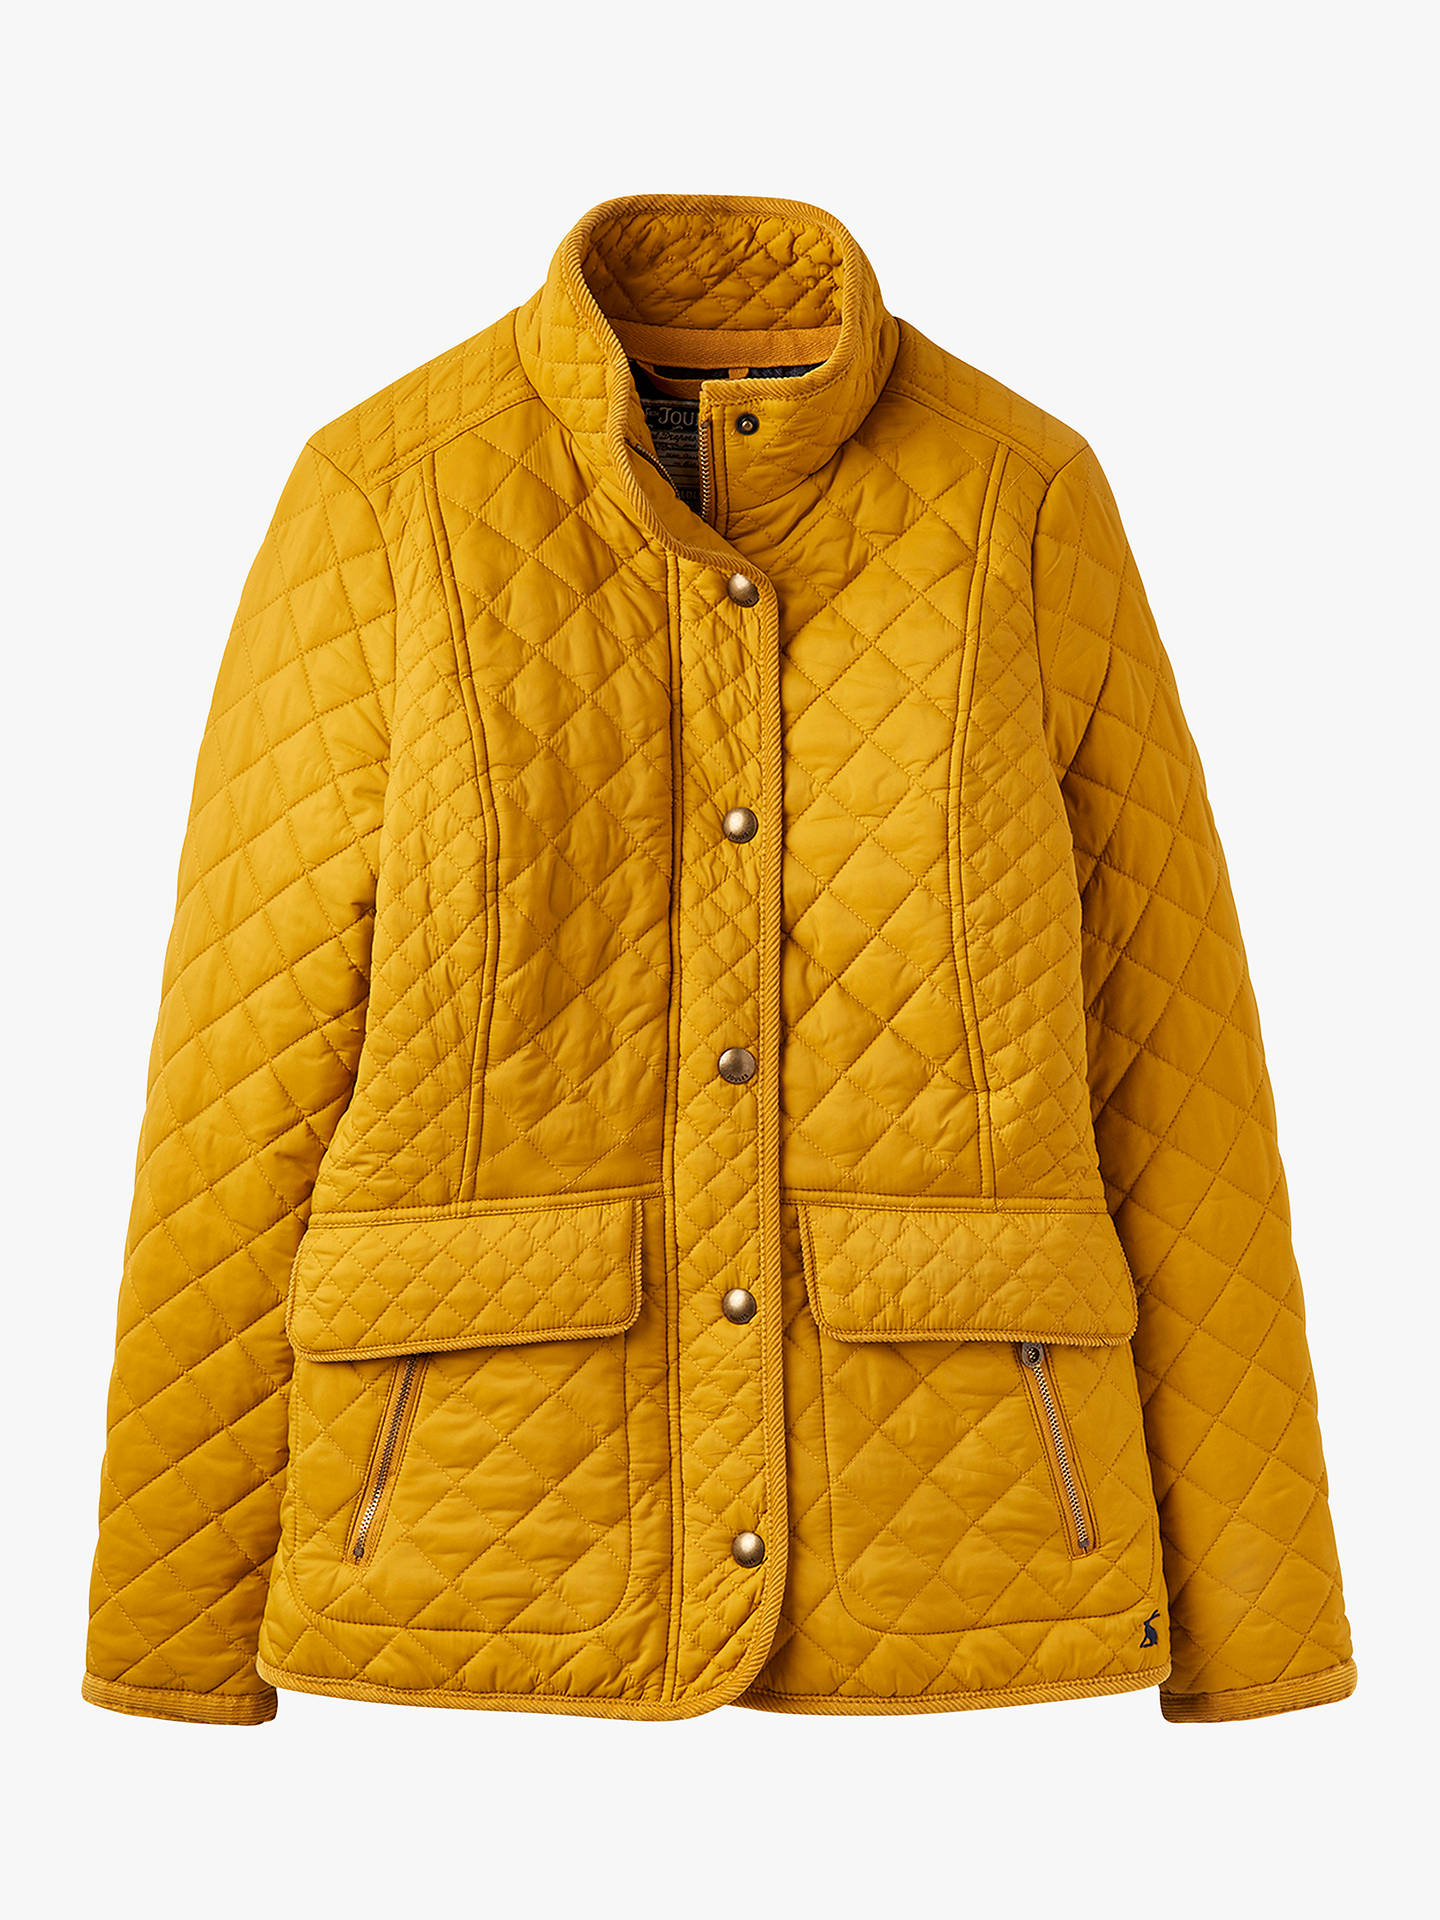 450c83555 Joules Newdale Quilted Coat, Caramel at John Lewis & Partners